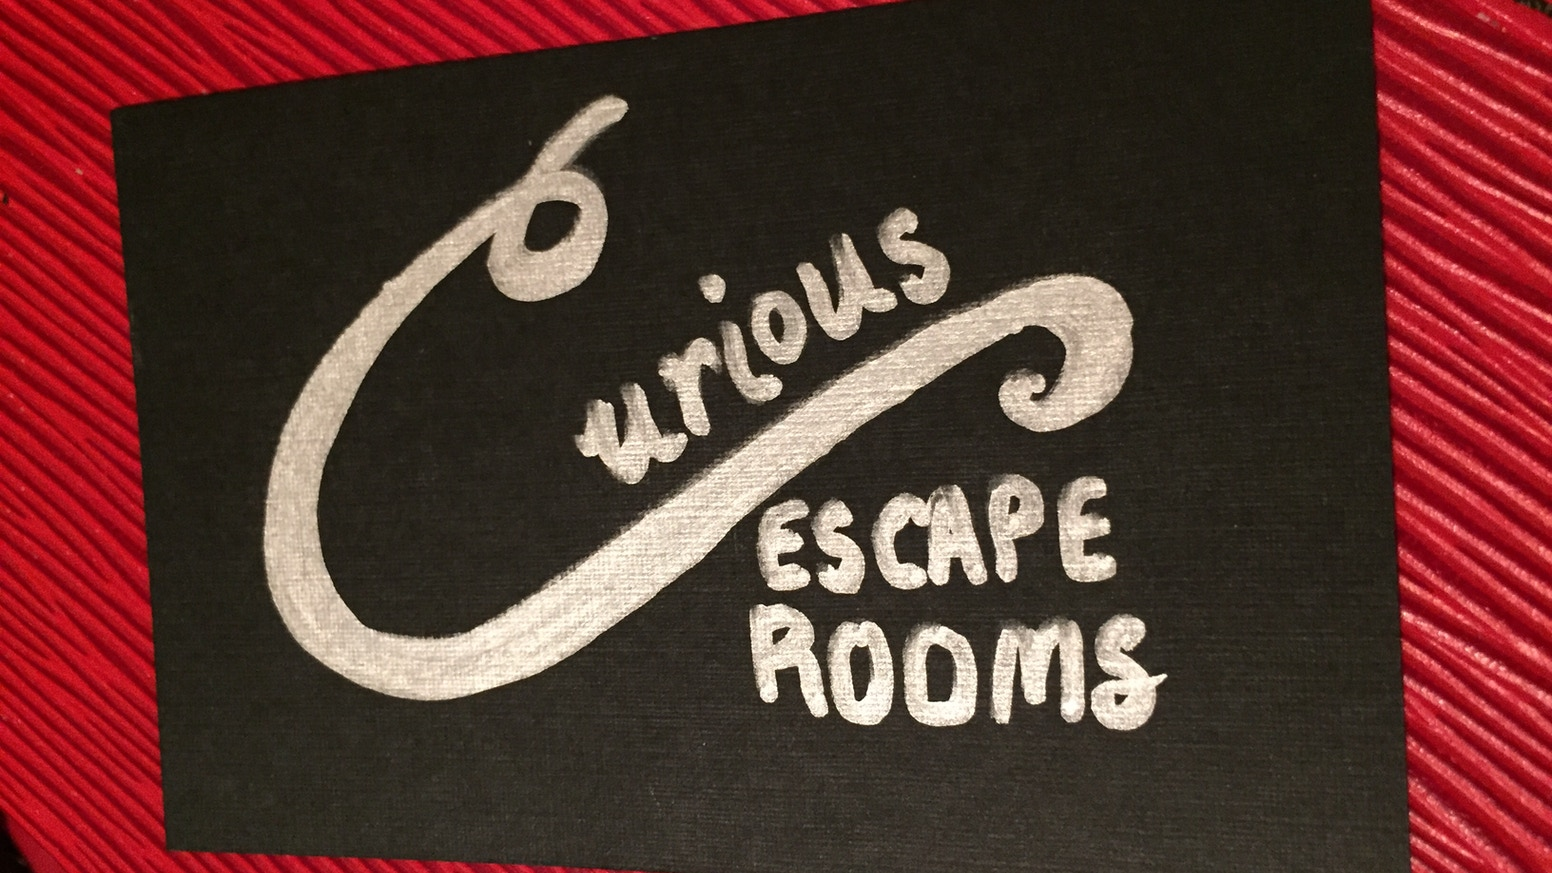 Worcester Ma Researchers Seek Clues To >> Curious Escape Rooms In Fitchburg Ma By Audrey Chow Kickstarter